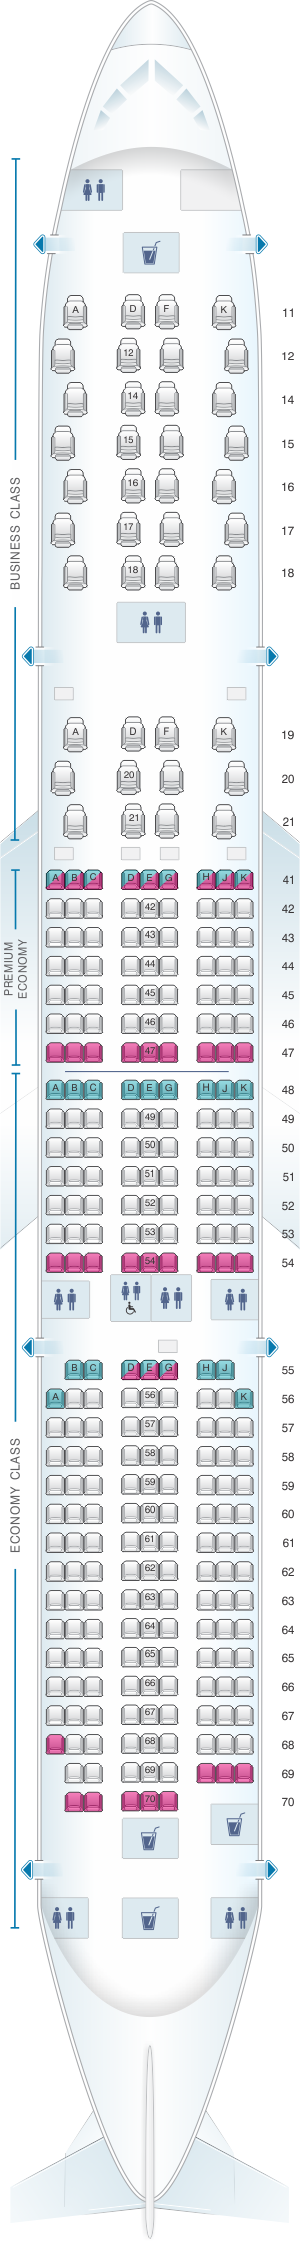 Seat map for Singapore Airlines Airbus A350 900 config.2